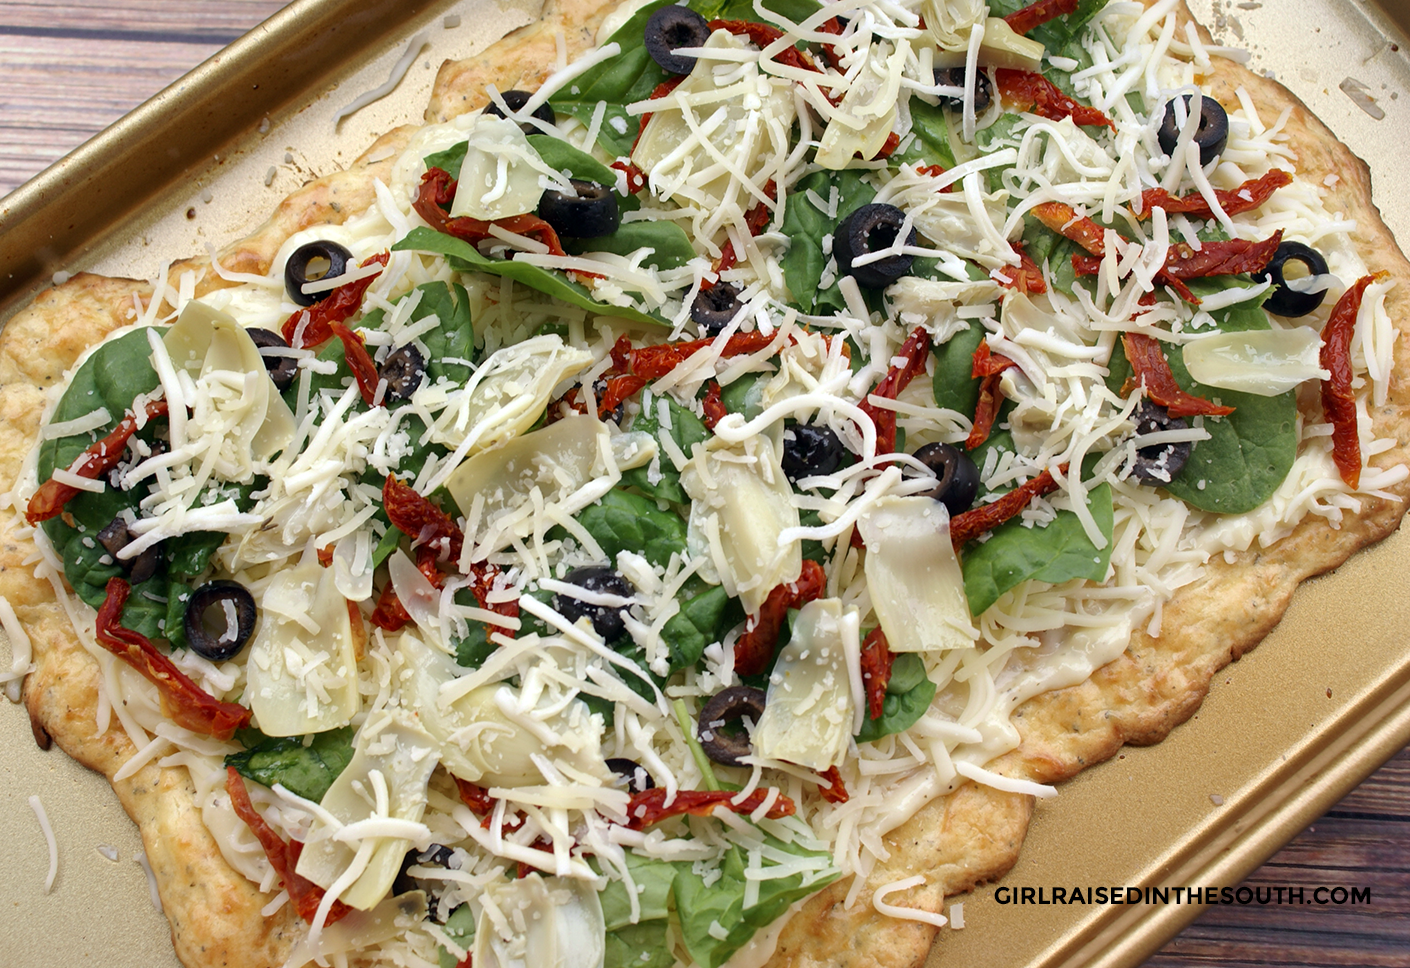 No Dough Gluten Free Pizza